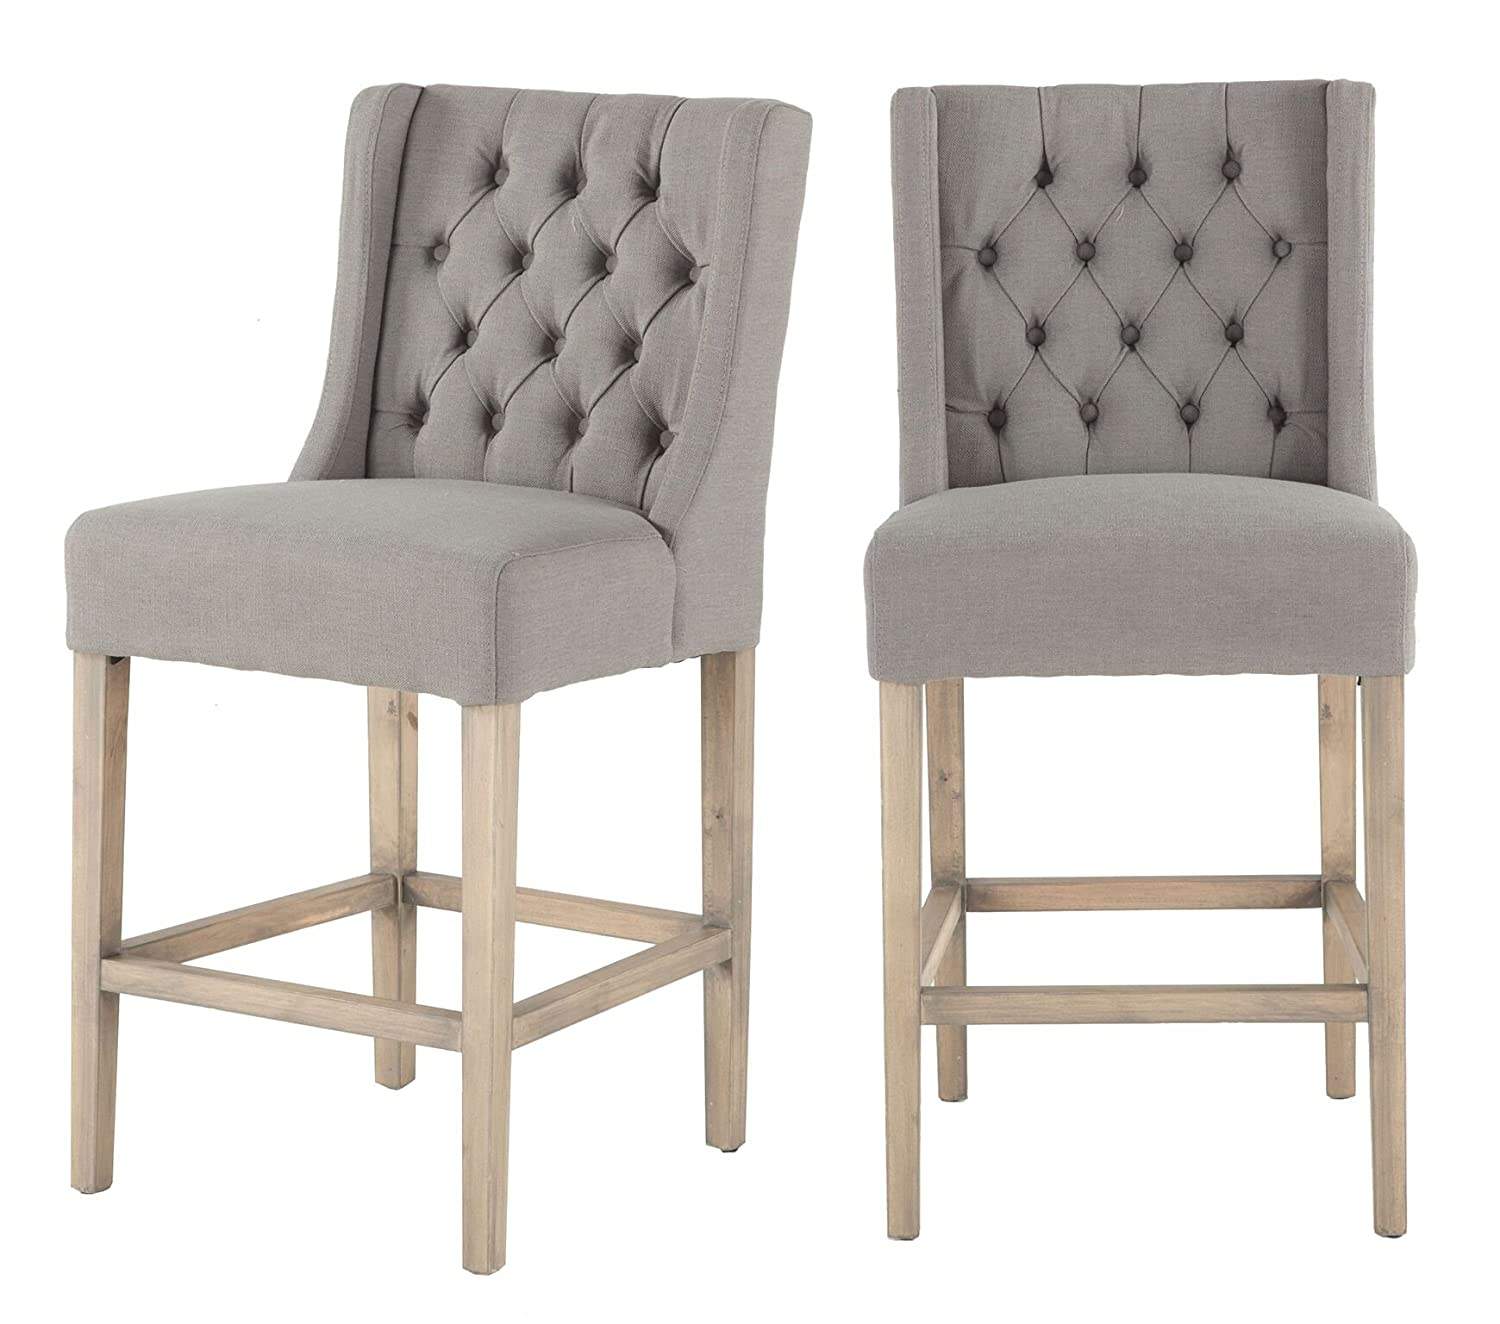 free shipping 8beb3 7469f Amazon.com: World Interiors ZWCL83-OWGN-2X Tufted Grey Linen ...